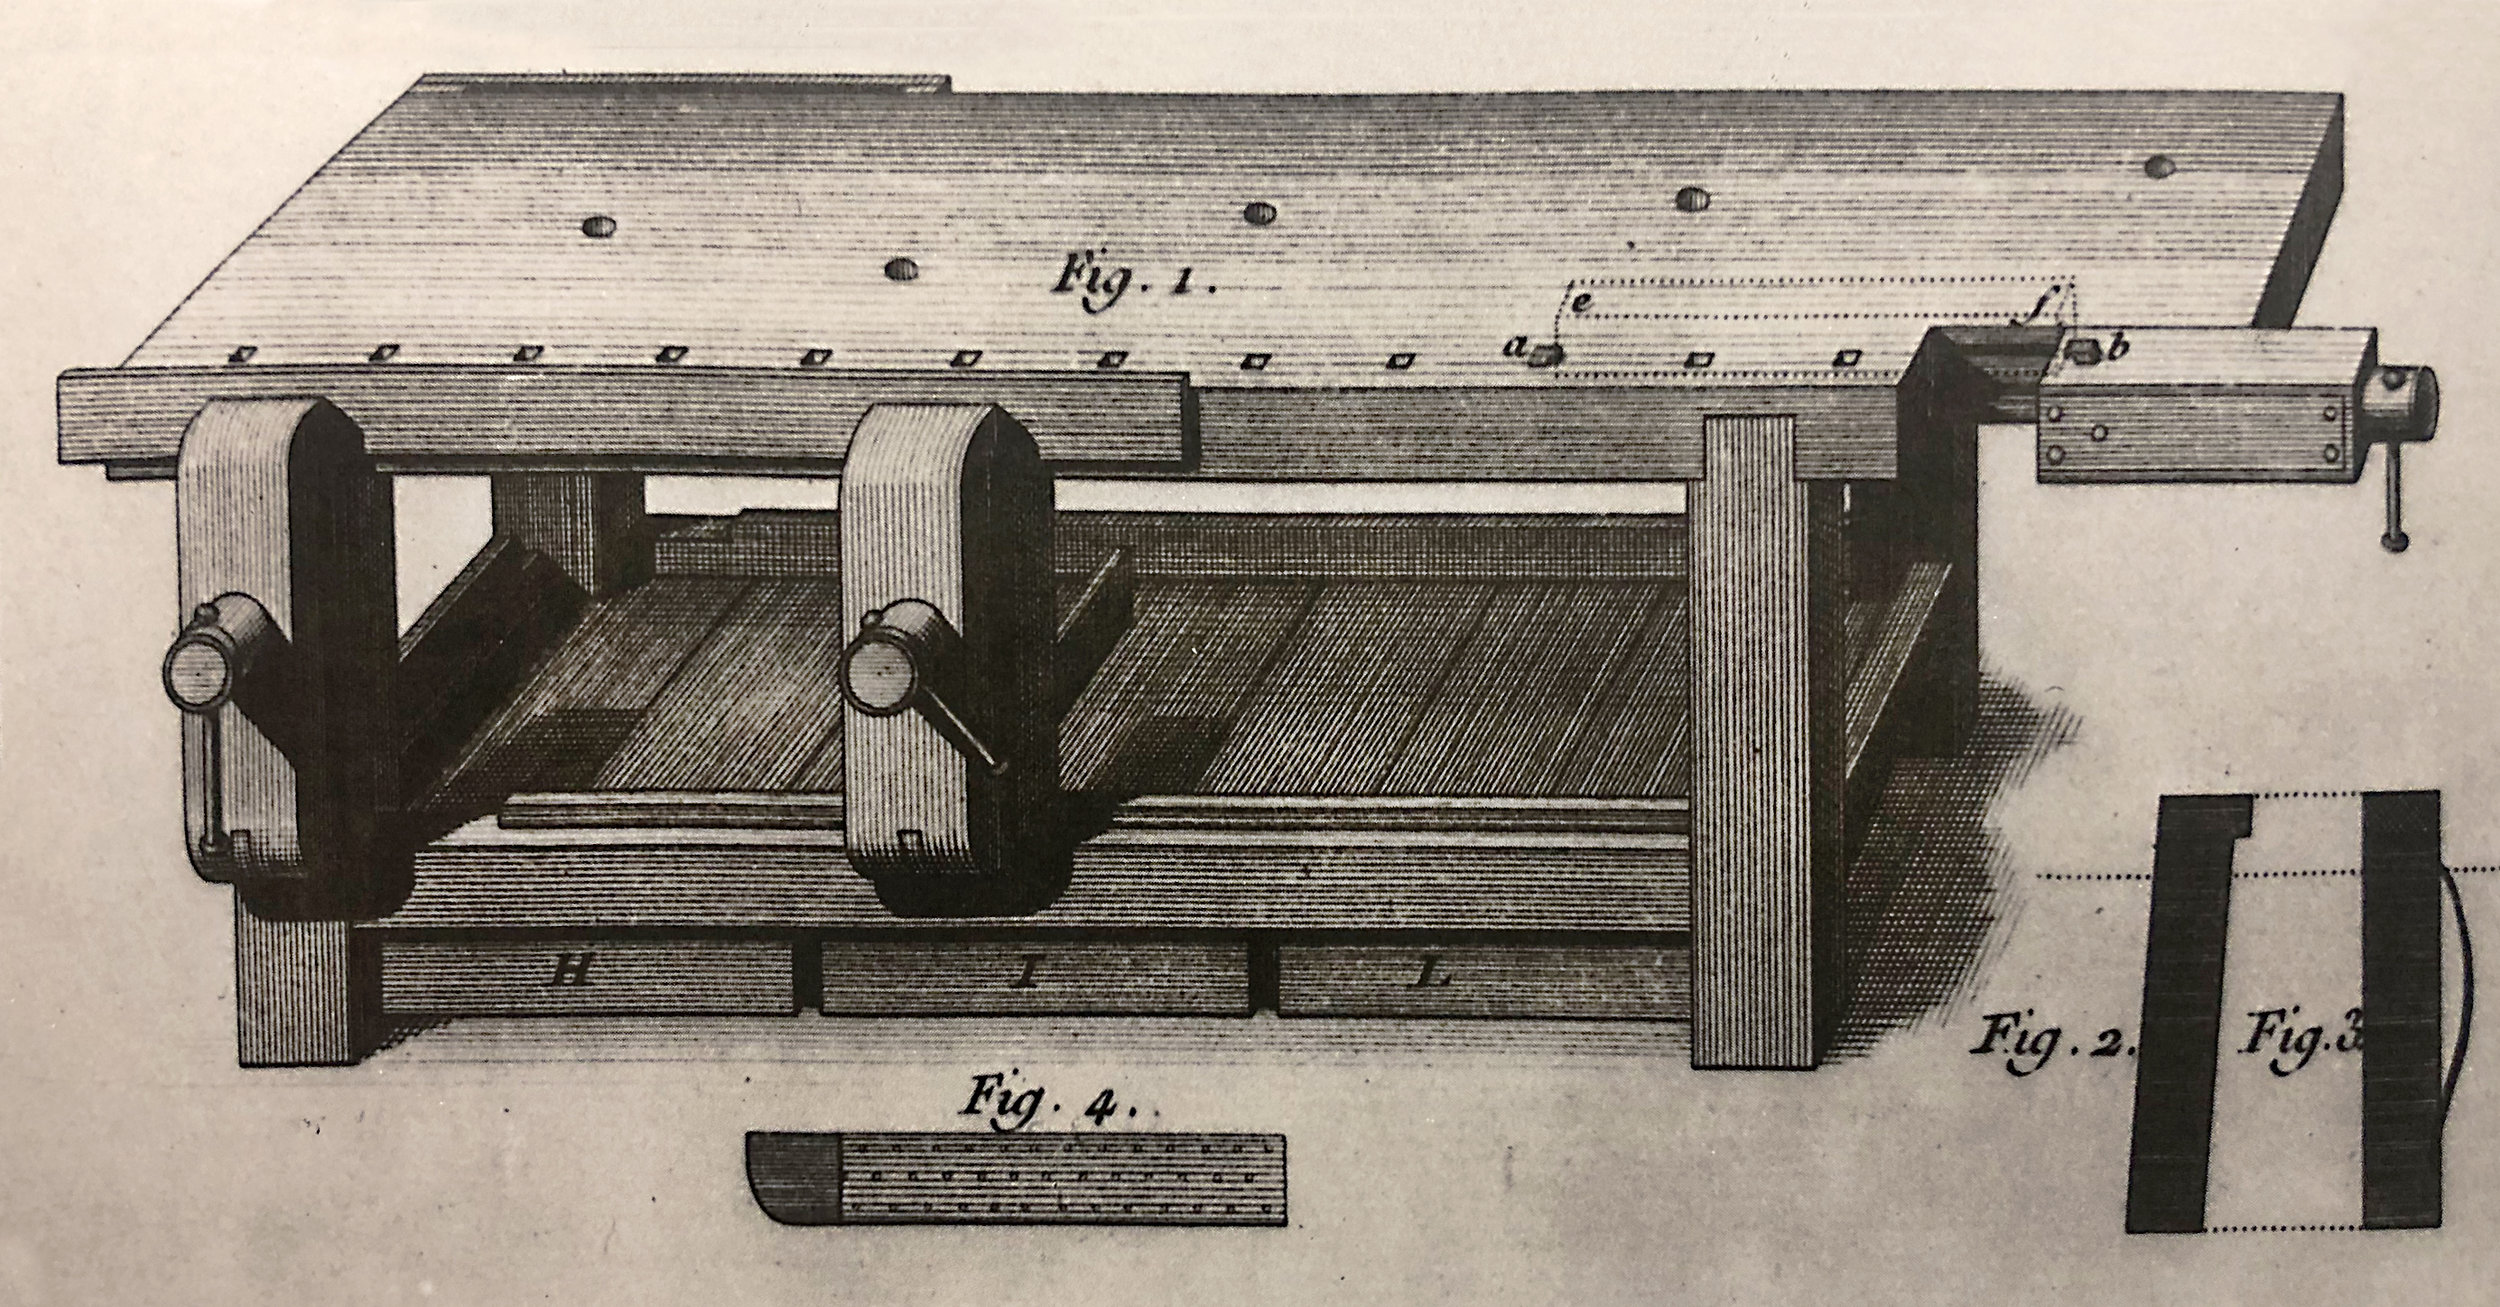 An illustration of a late-1700s German cabinetmaker's bench and an ad for a 1920s mass-produced workbench selling for $22.50. From The Workbench Book by Scott Landis, 1987, Taunton Press, Inc.